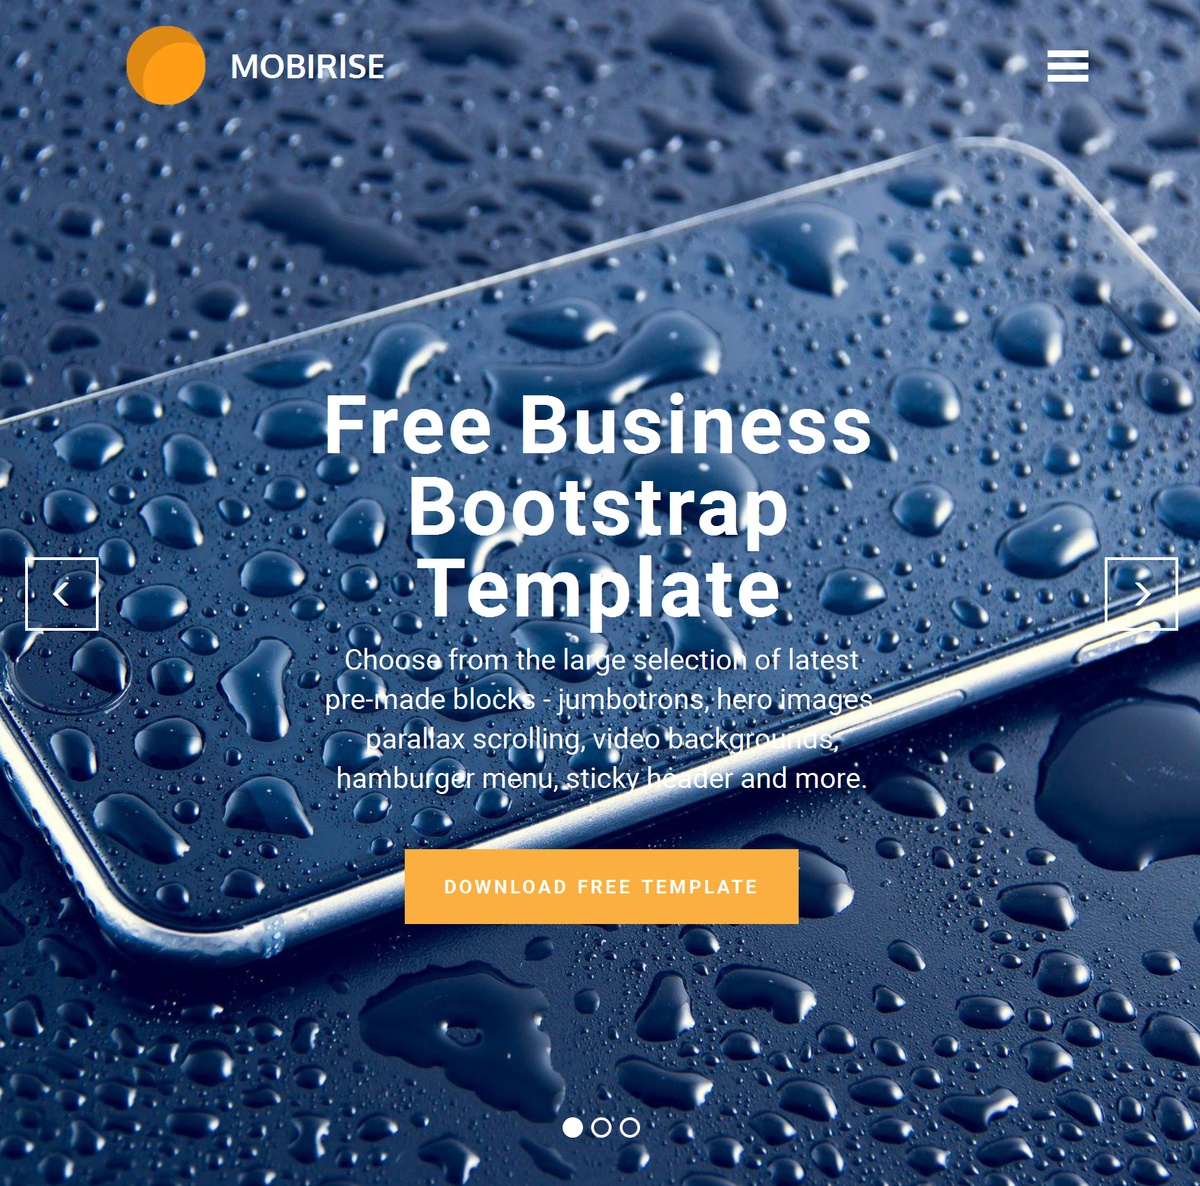 Mobile Responsive Site Templates Themes Extensions